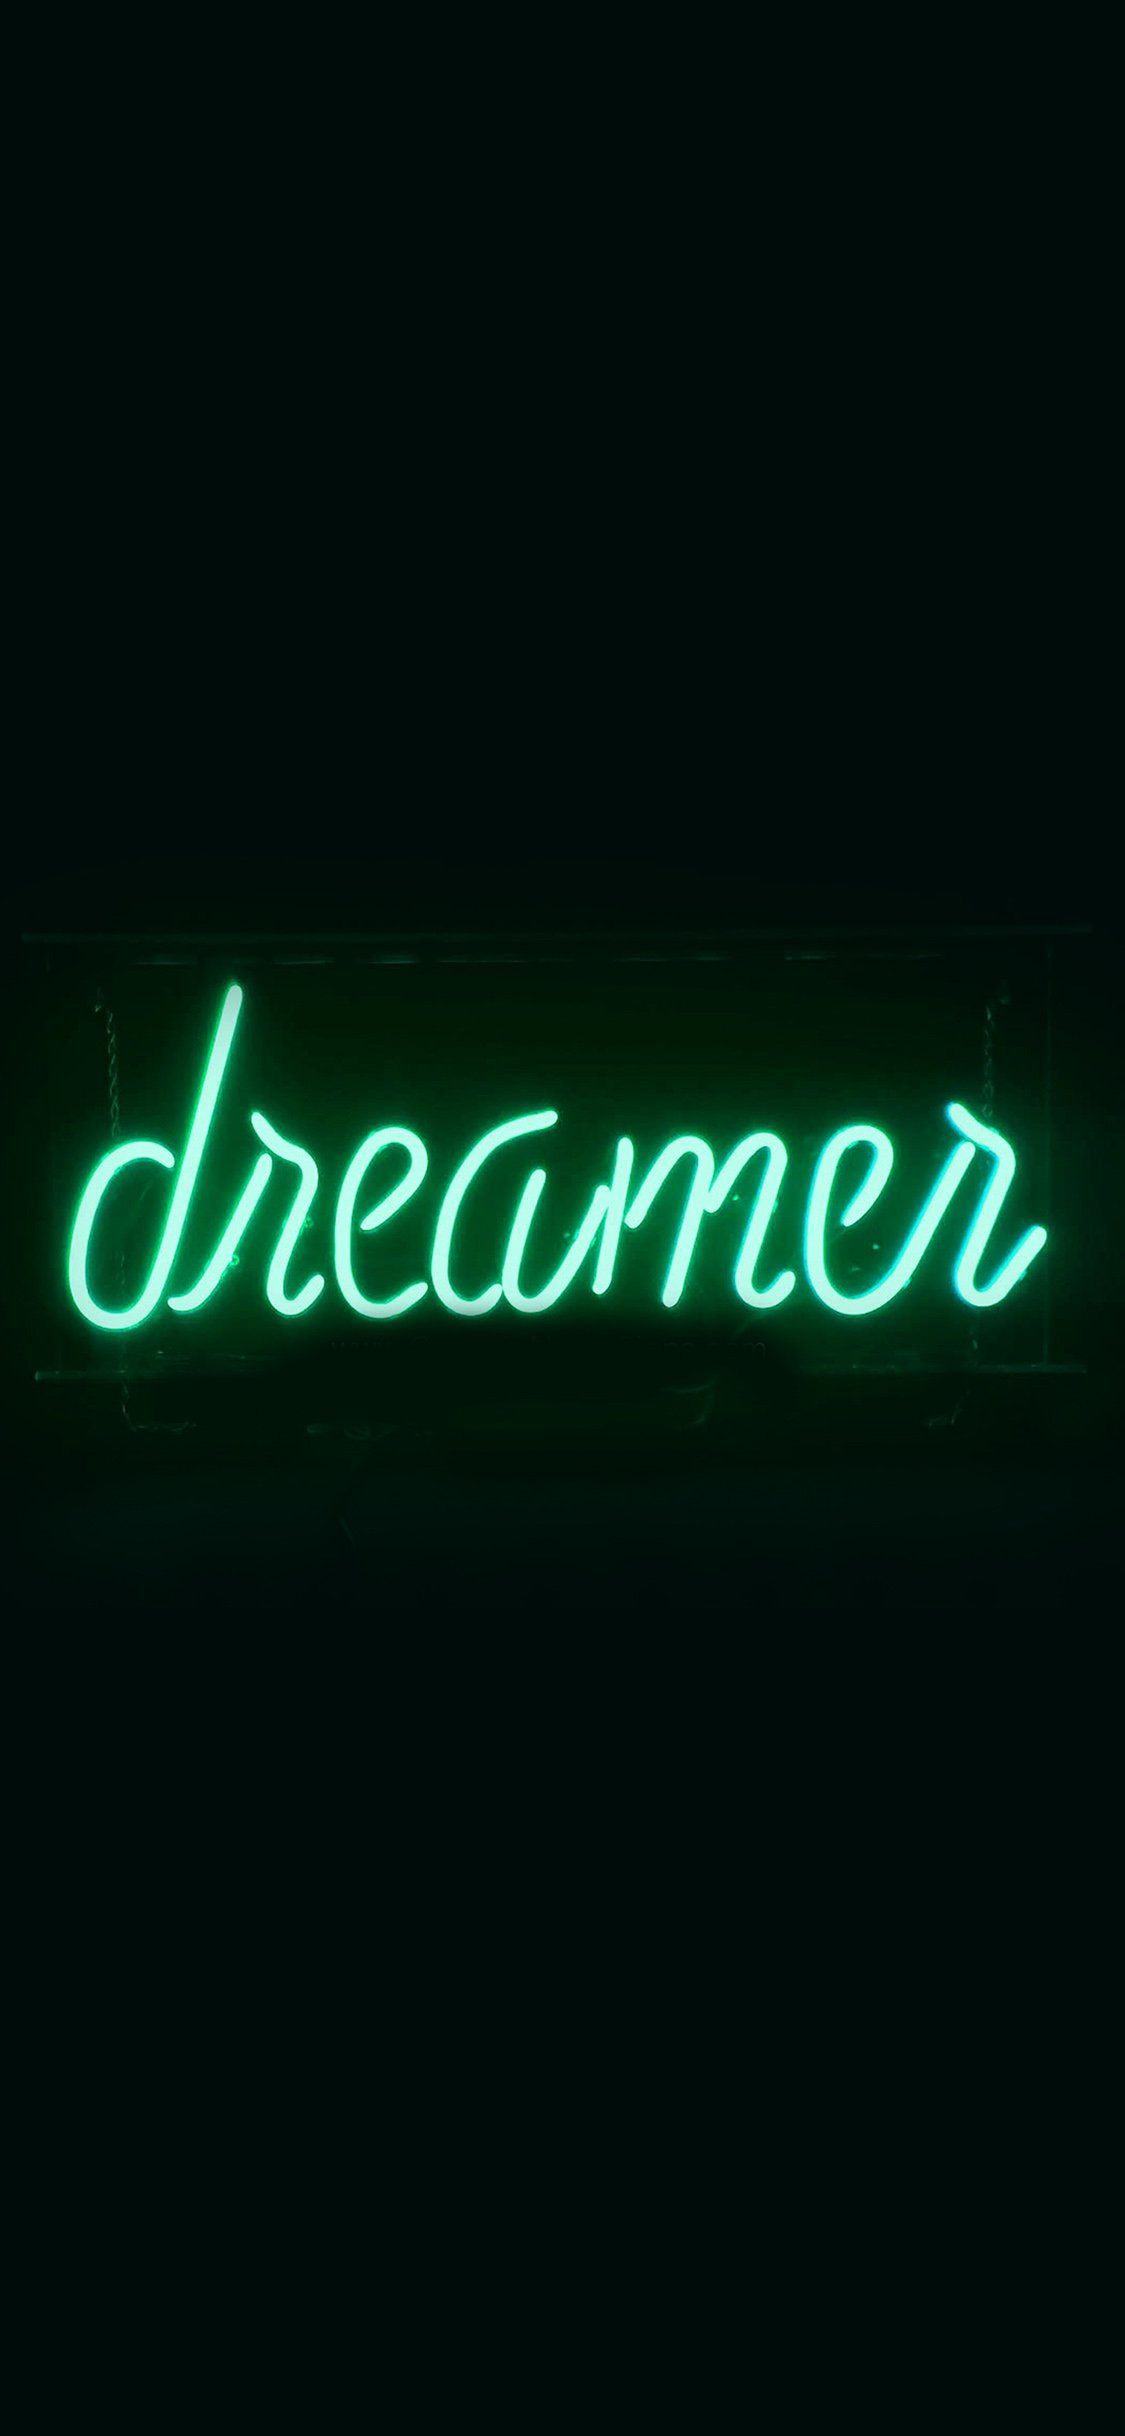 Pin by christina kirkendall on neon Neon signs, Neon